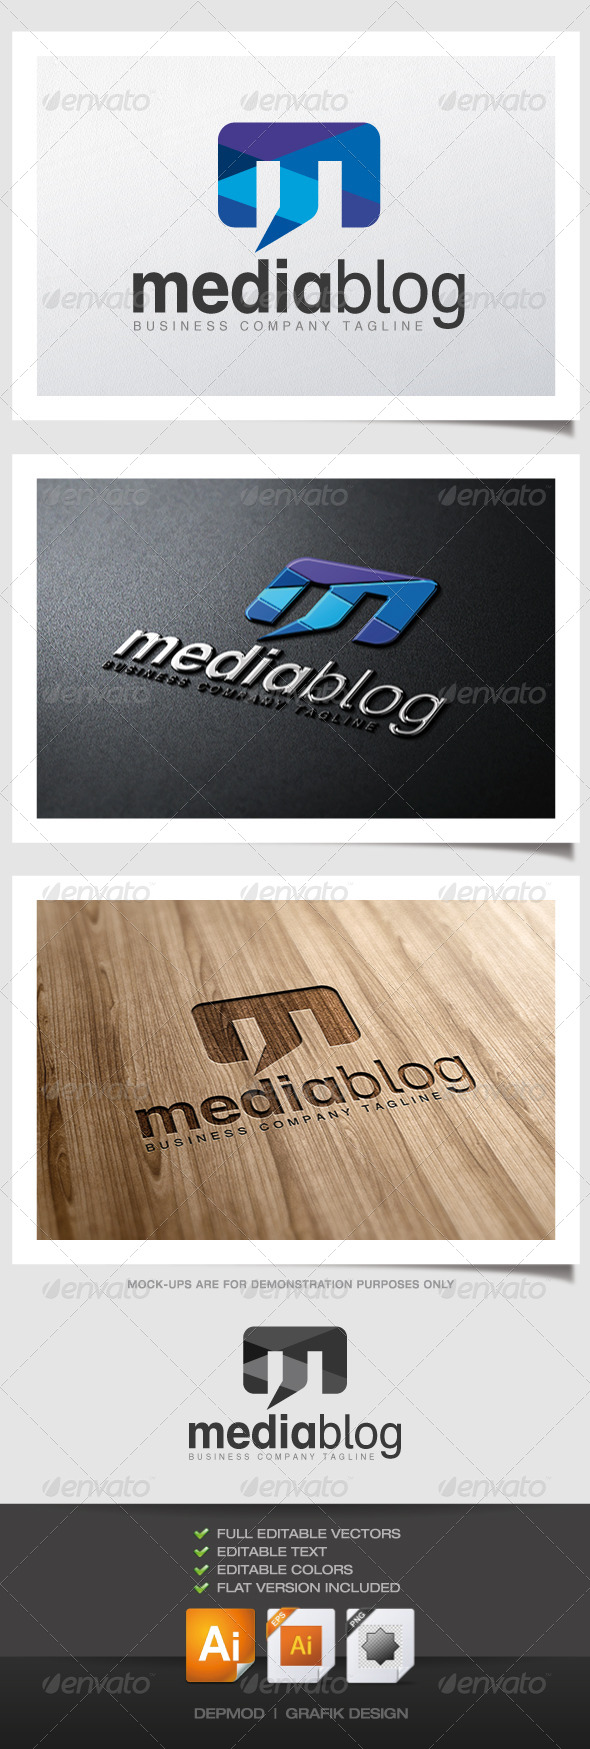 Media Blog Logo - Letters Logo Templates